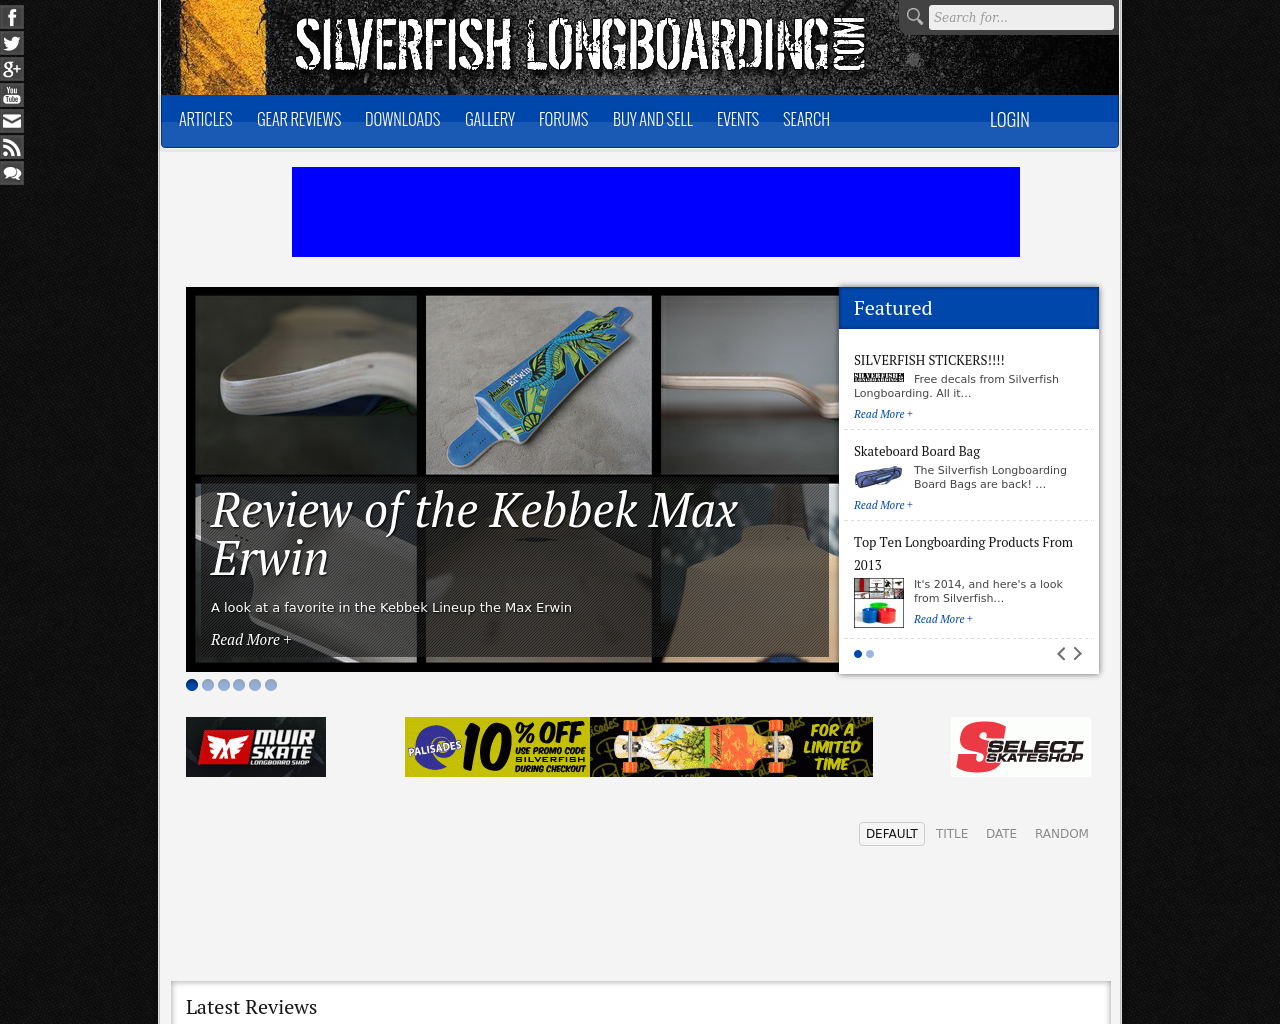 Silverfish-Longboarding-Advertising-Reviews-Pricing